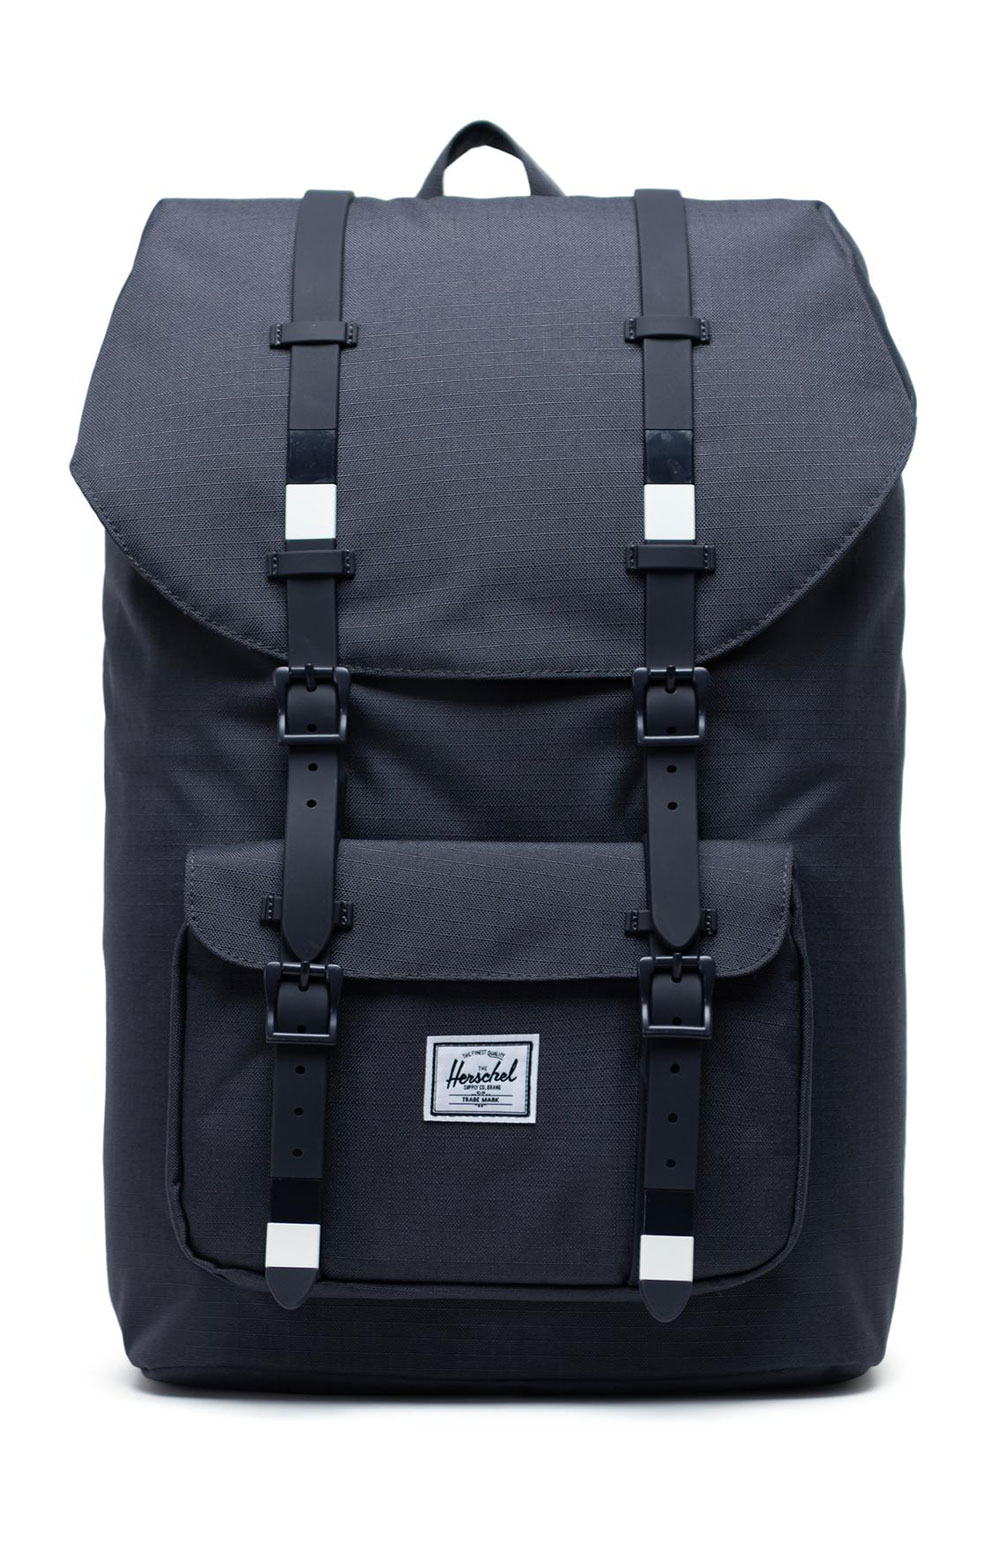 Little America Backpack - Periscope Ripstop